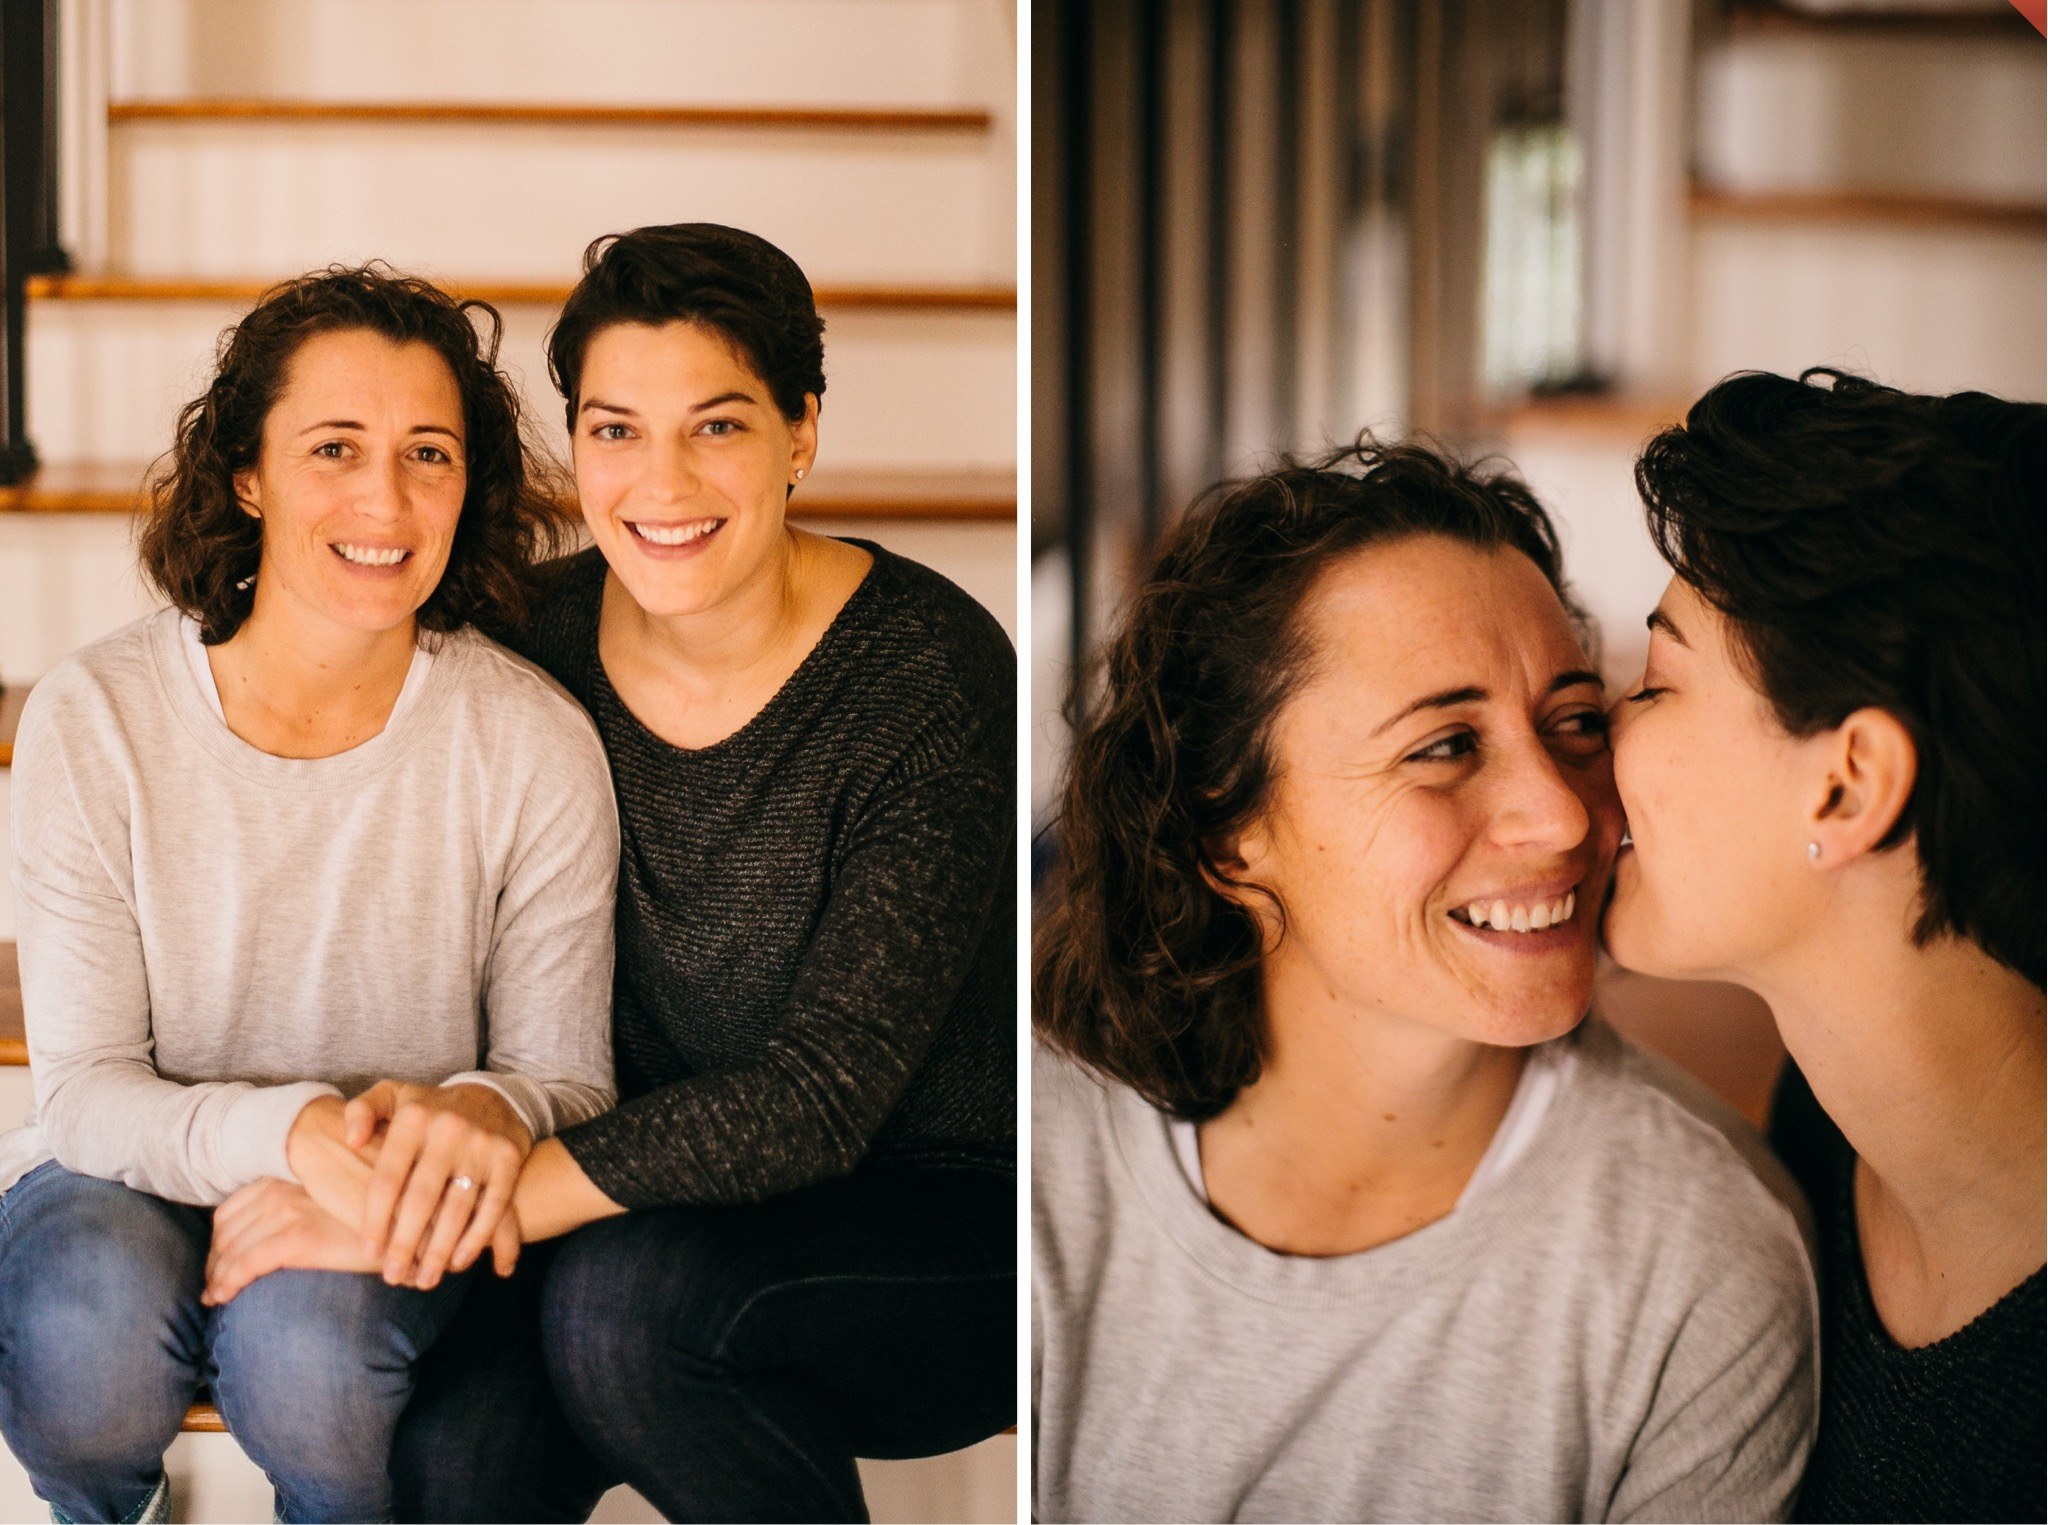 A lesbian couple poses for engagement photos on a staircase.